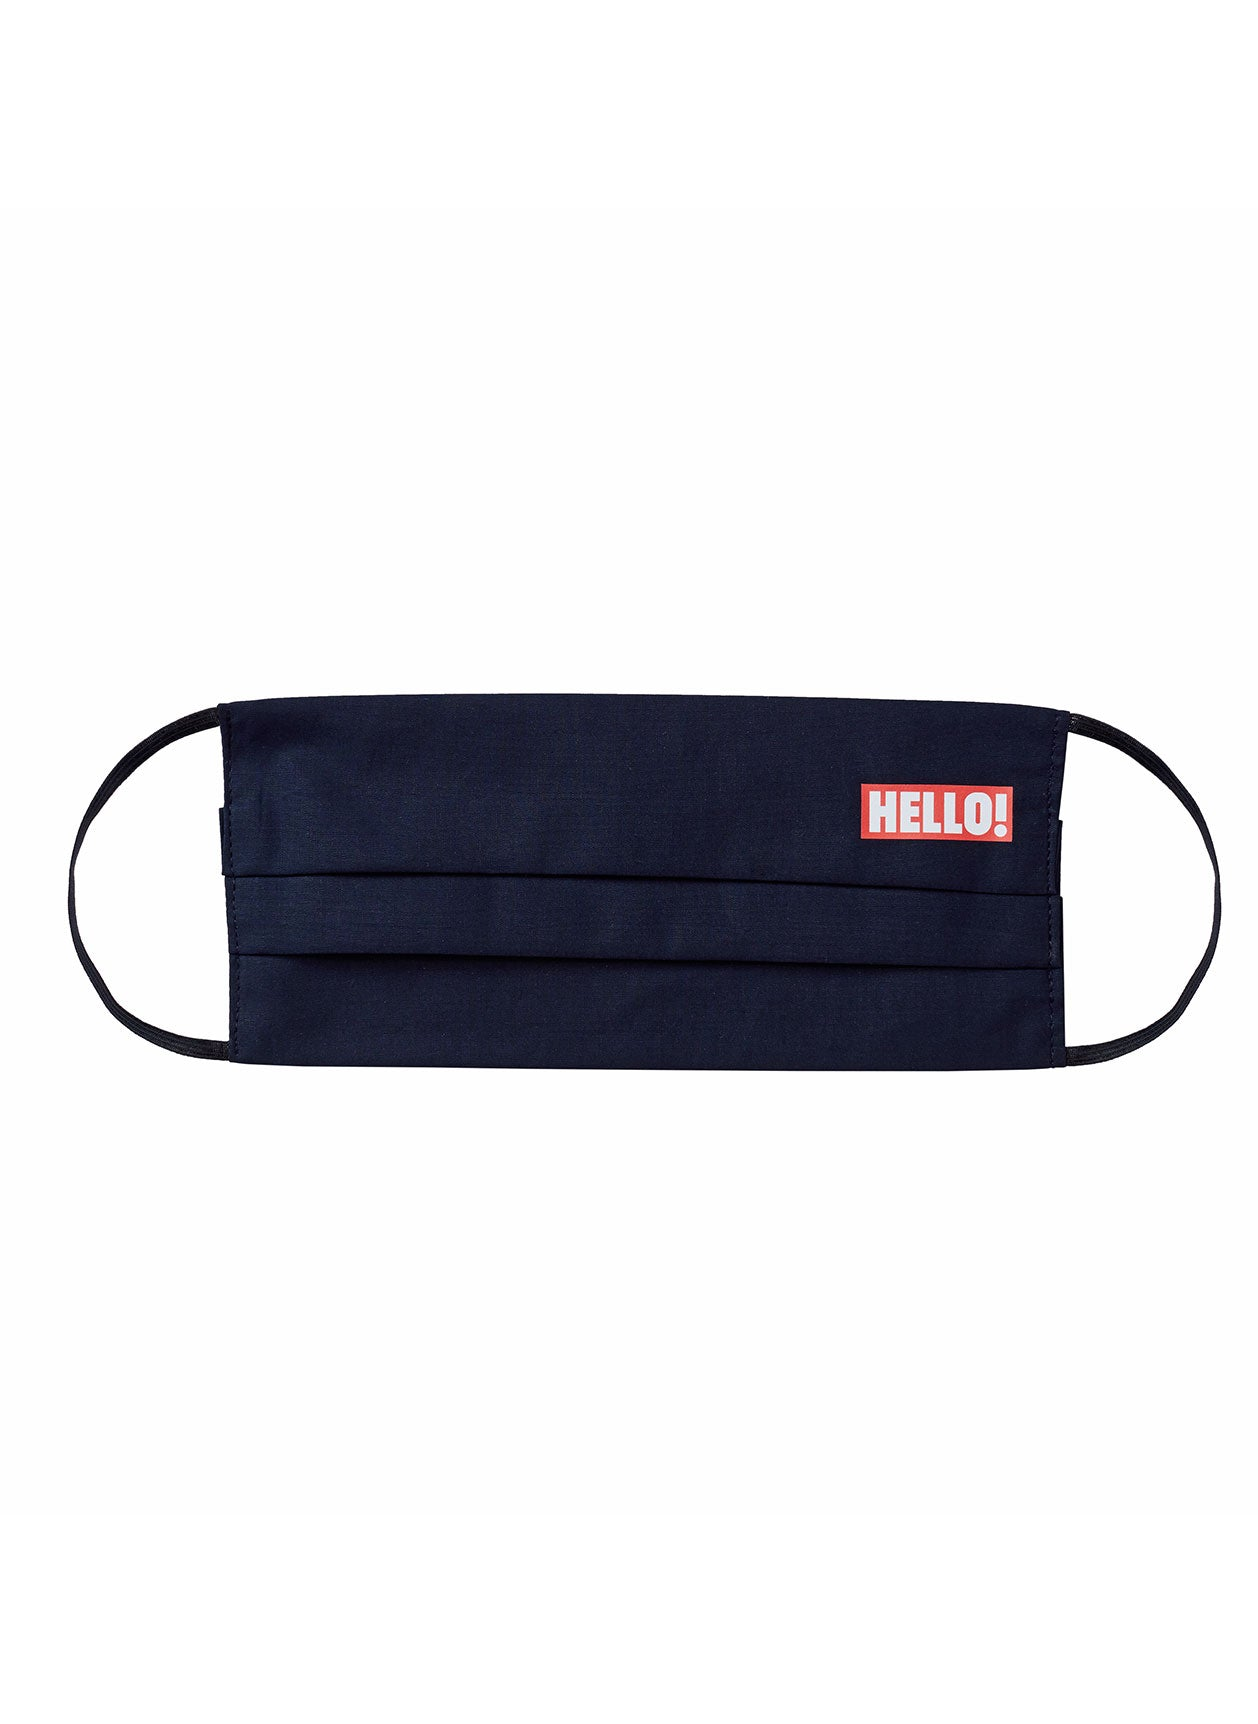 HELLO! MASK Navy